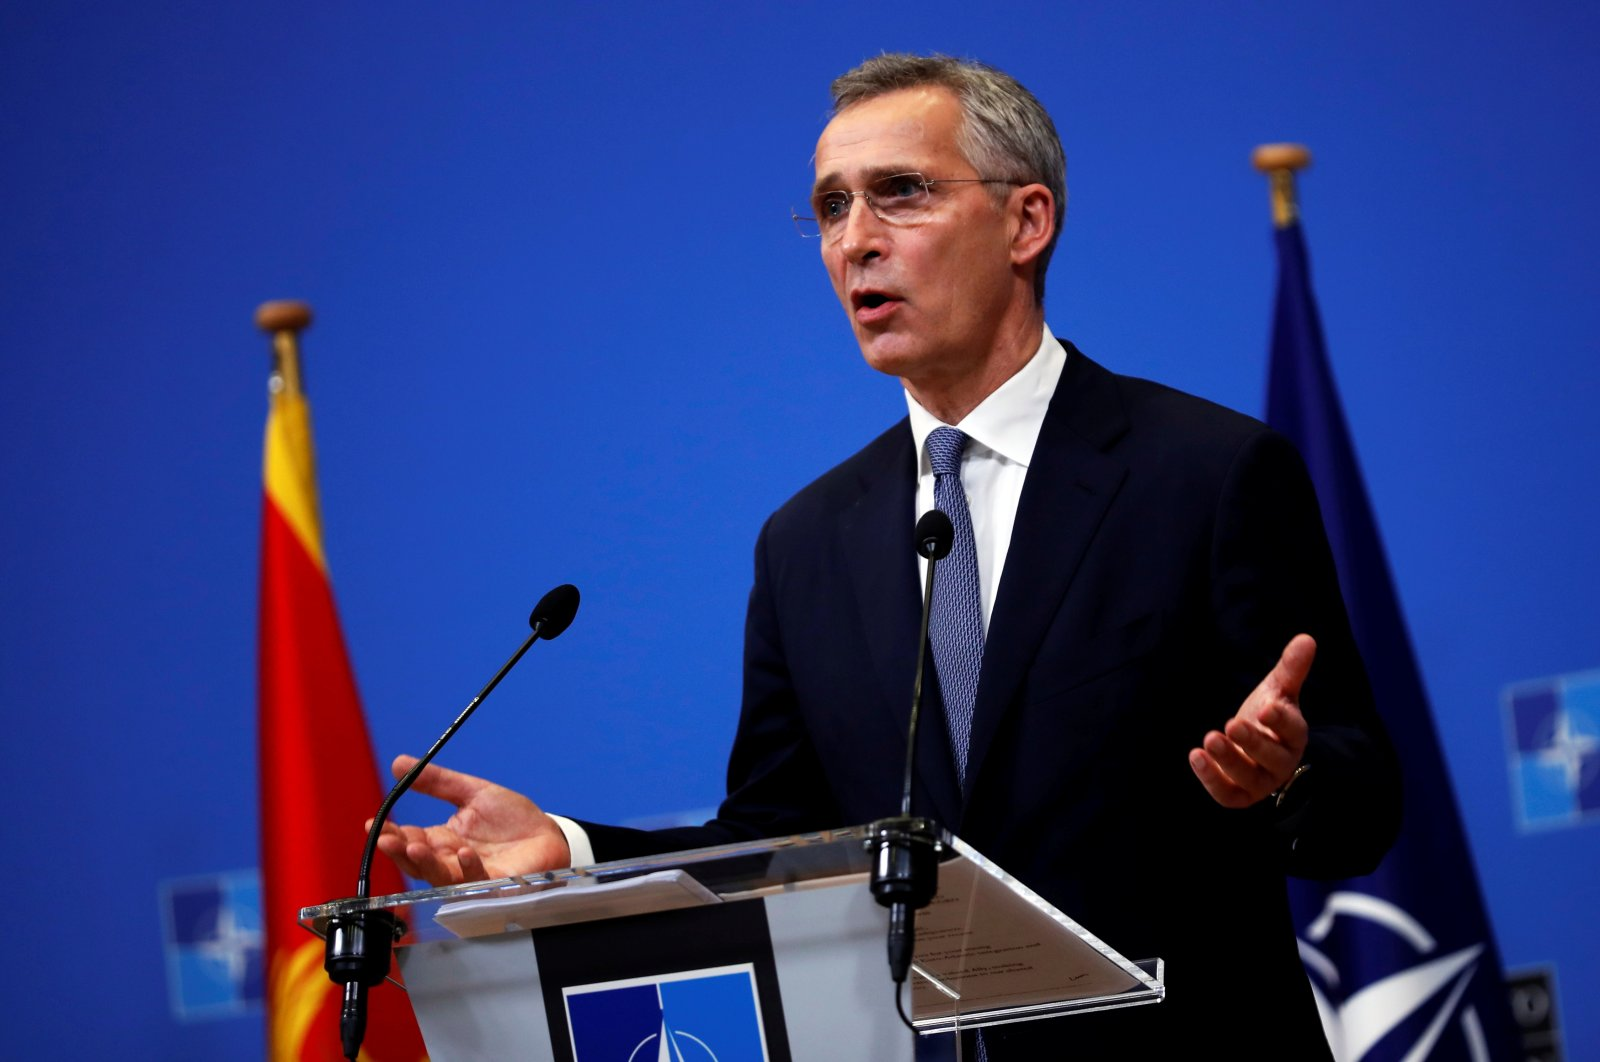 NATO Secretary General Jens Stoltenberg talks during a joint news conference with Montenegro Prime Minister Zdravko Krivokapic at the NATO headquarters in Brussels, Belgium, Dec. 15, 2020. (Reuters Photo)